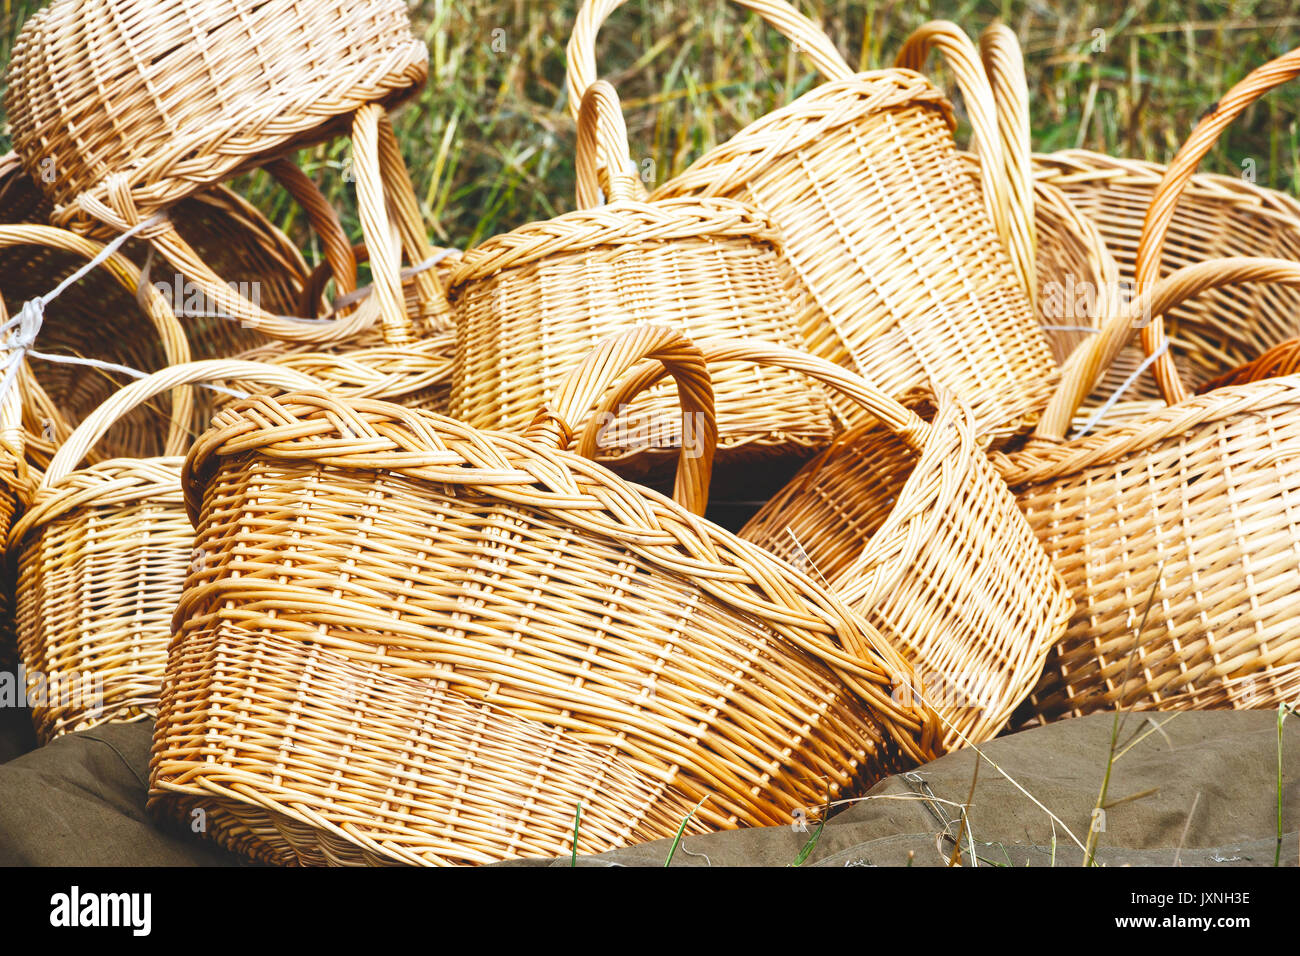 Cane Baskets Handicraft Cane Baskets Stock Photos And Handicraft Cane